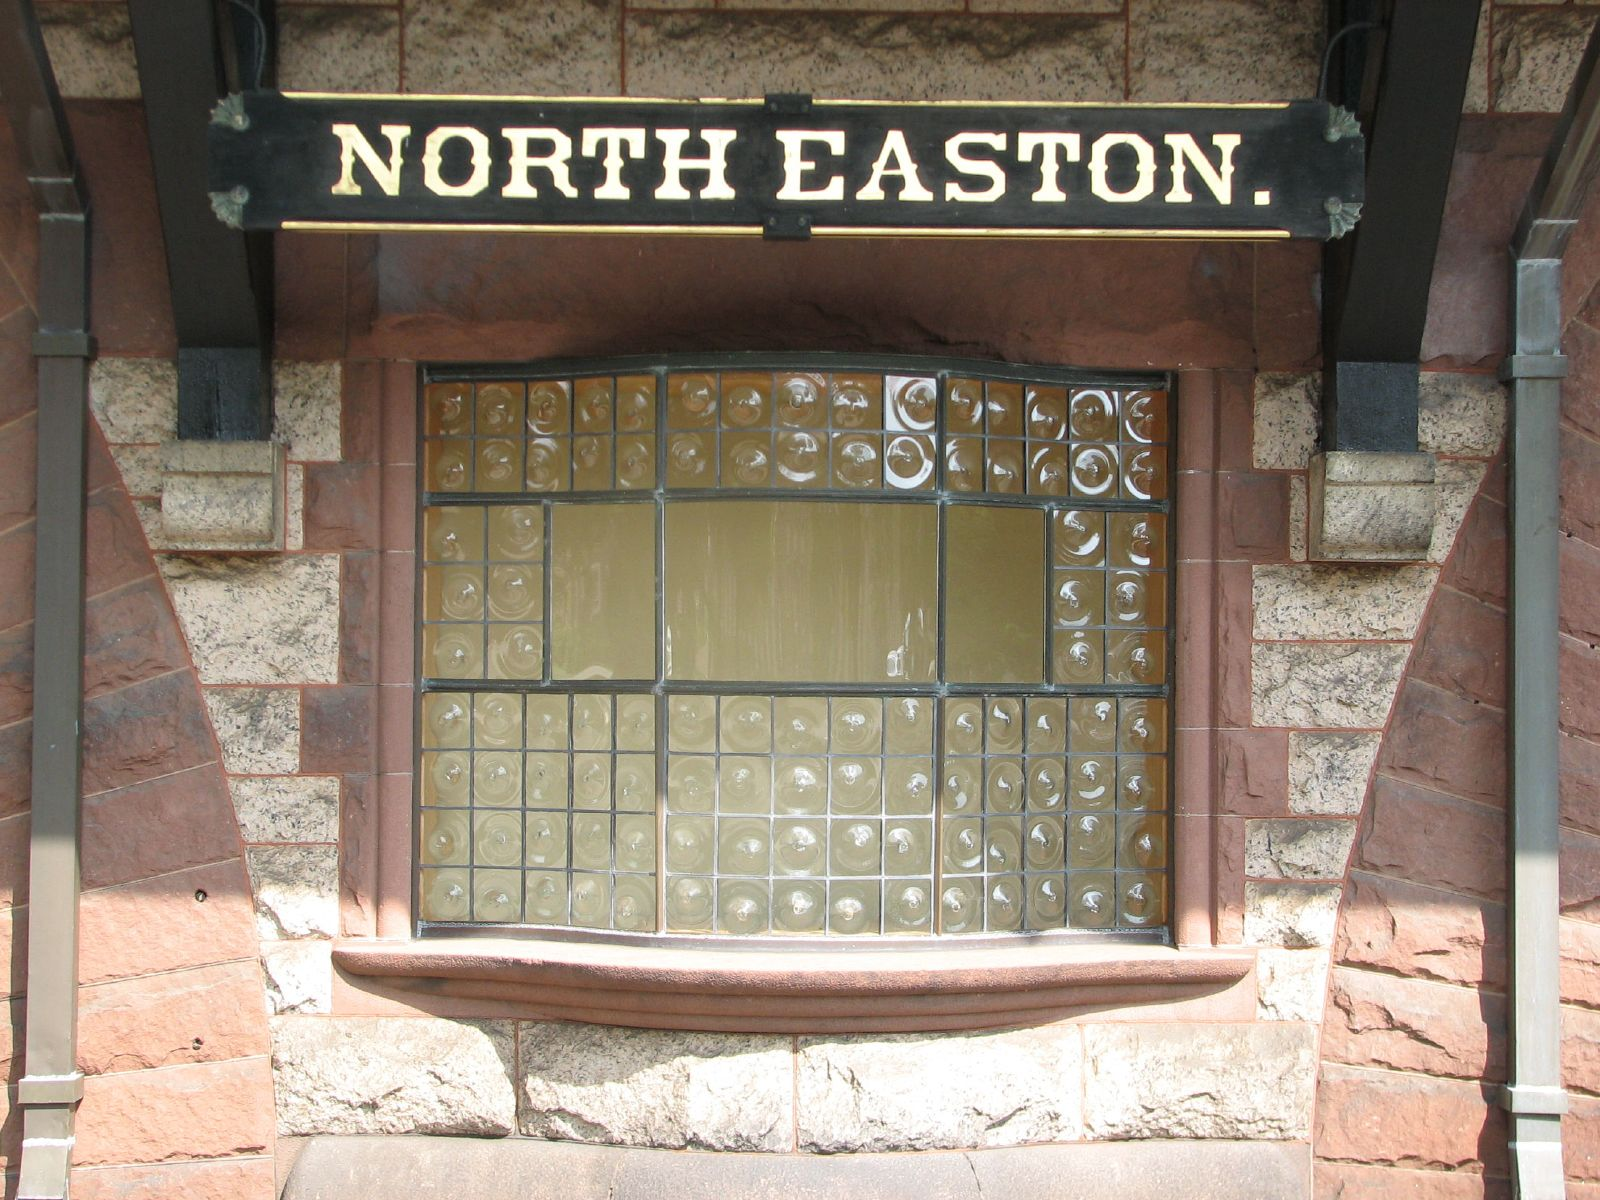 north easton dating A former north easton savings bank  of foxboro with felony bank fraud and theft in transactions dating back  mansfield bank manager charged with stealing .